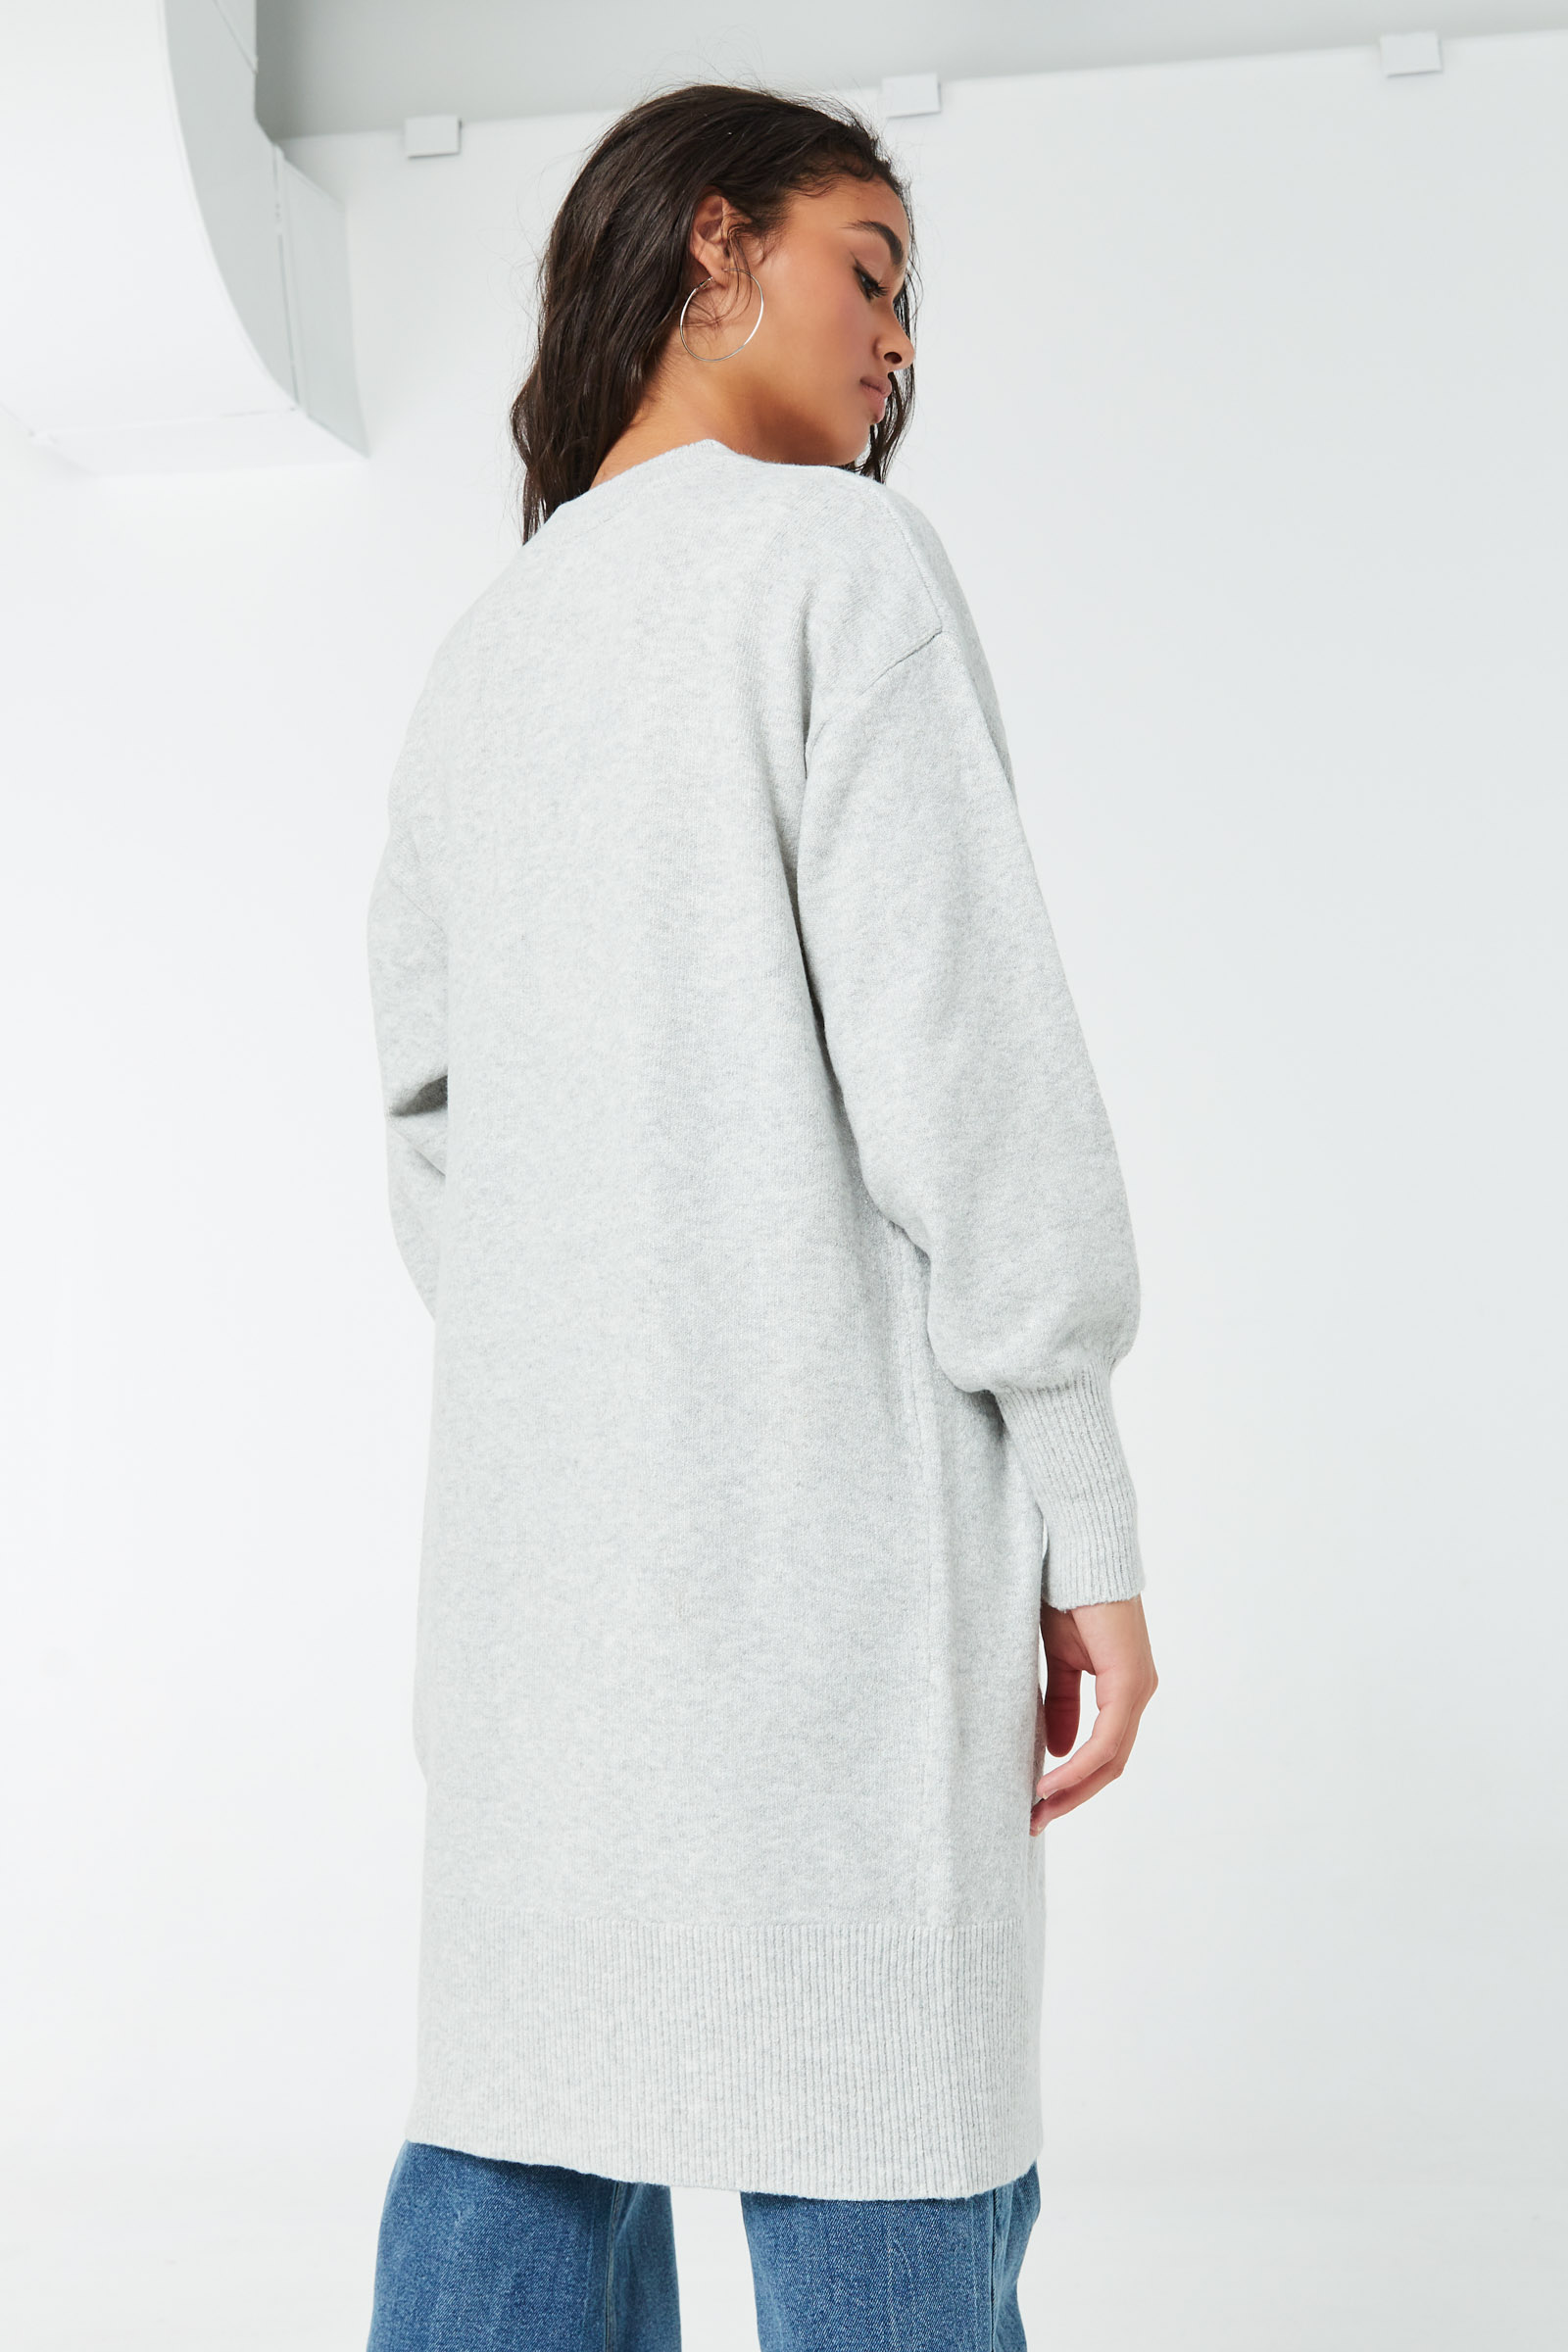 Tunic Cardigan with Bubble Sleeves